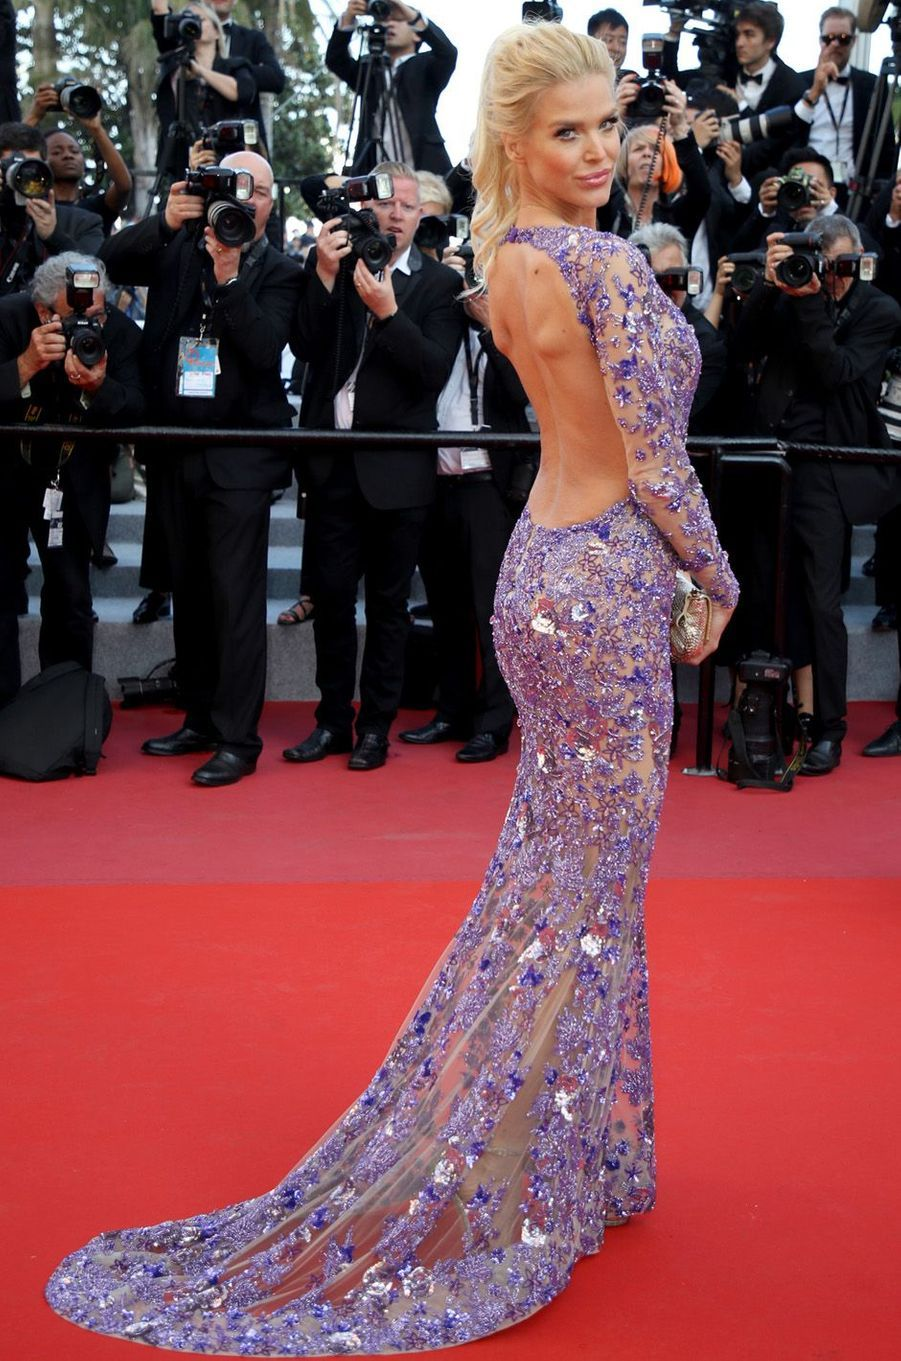 Victoria Silvstedt à Cannes.